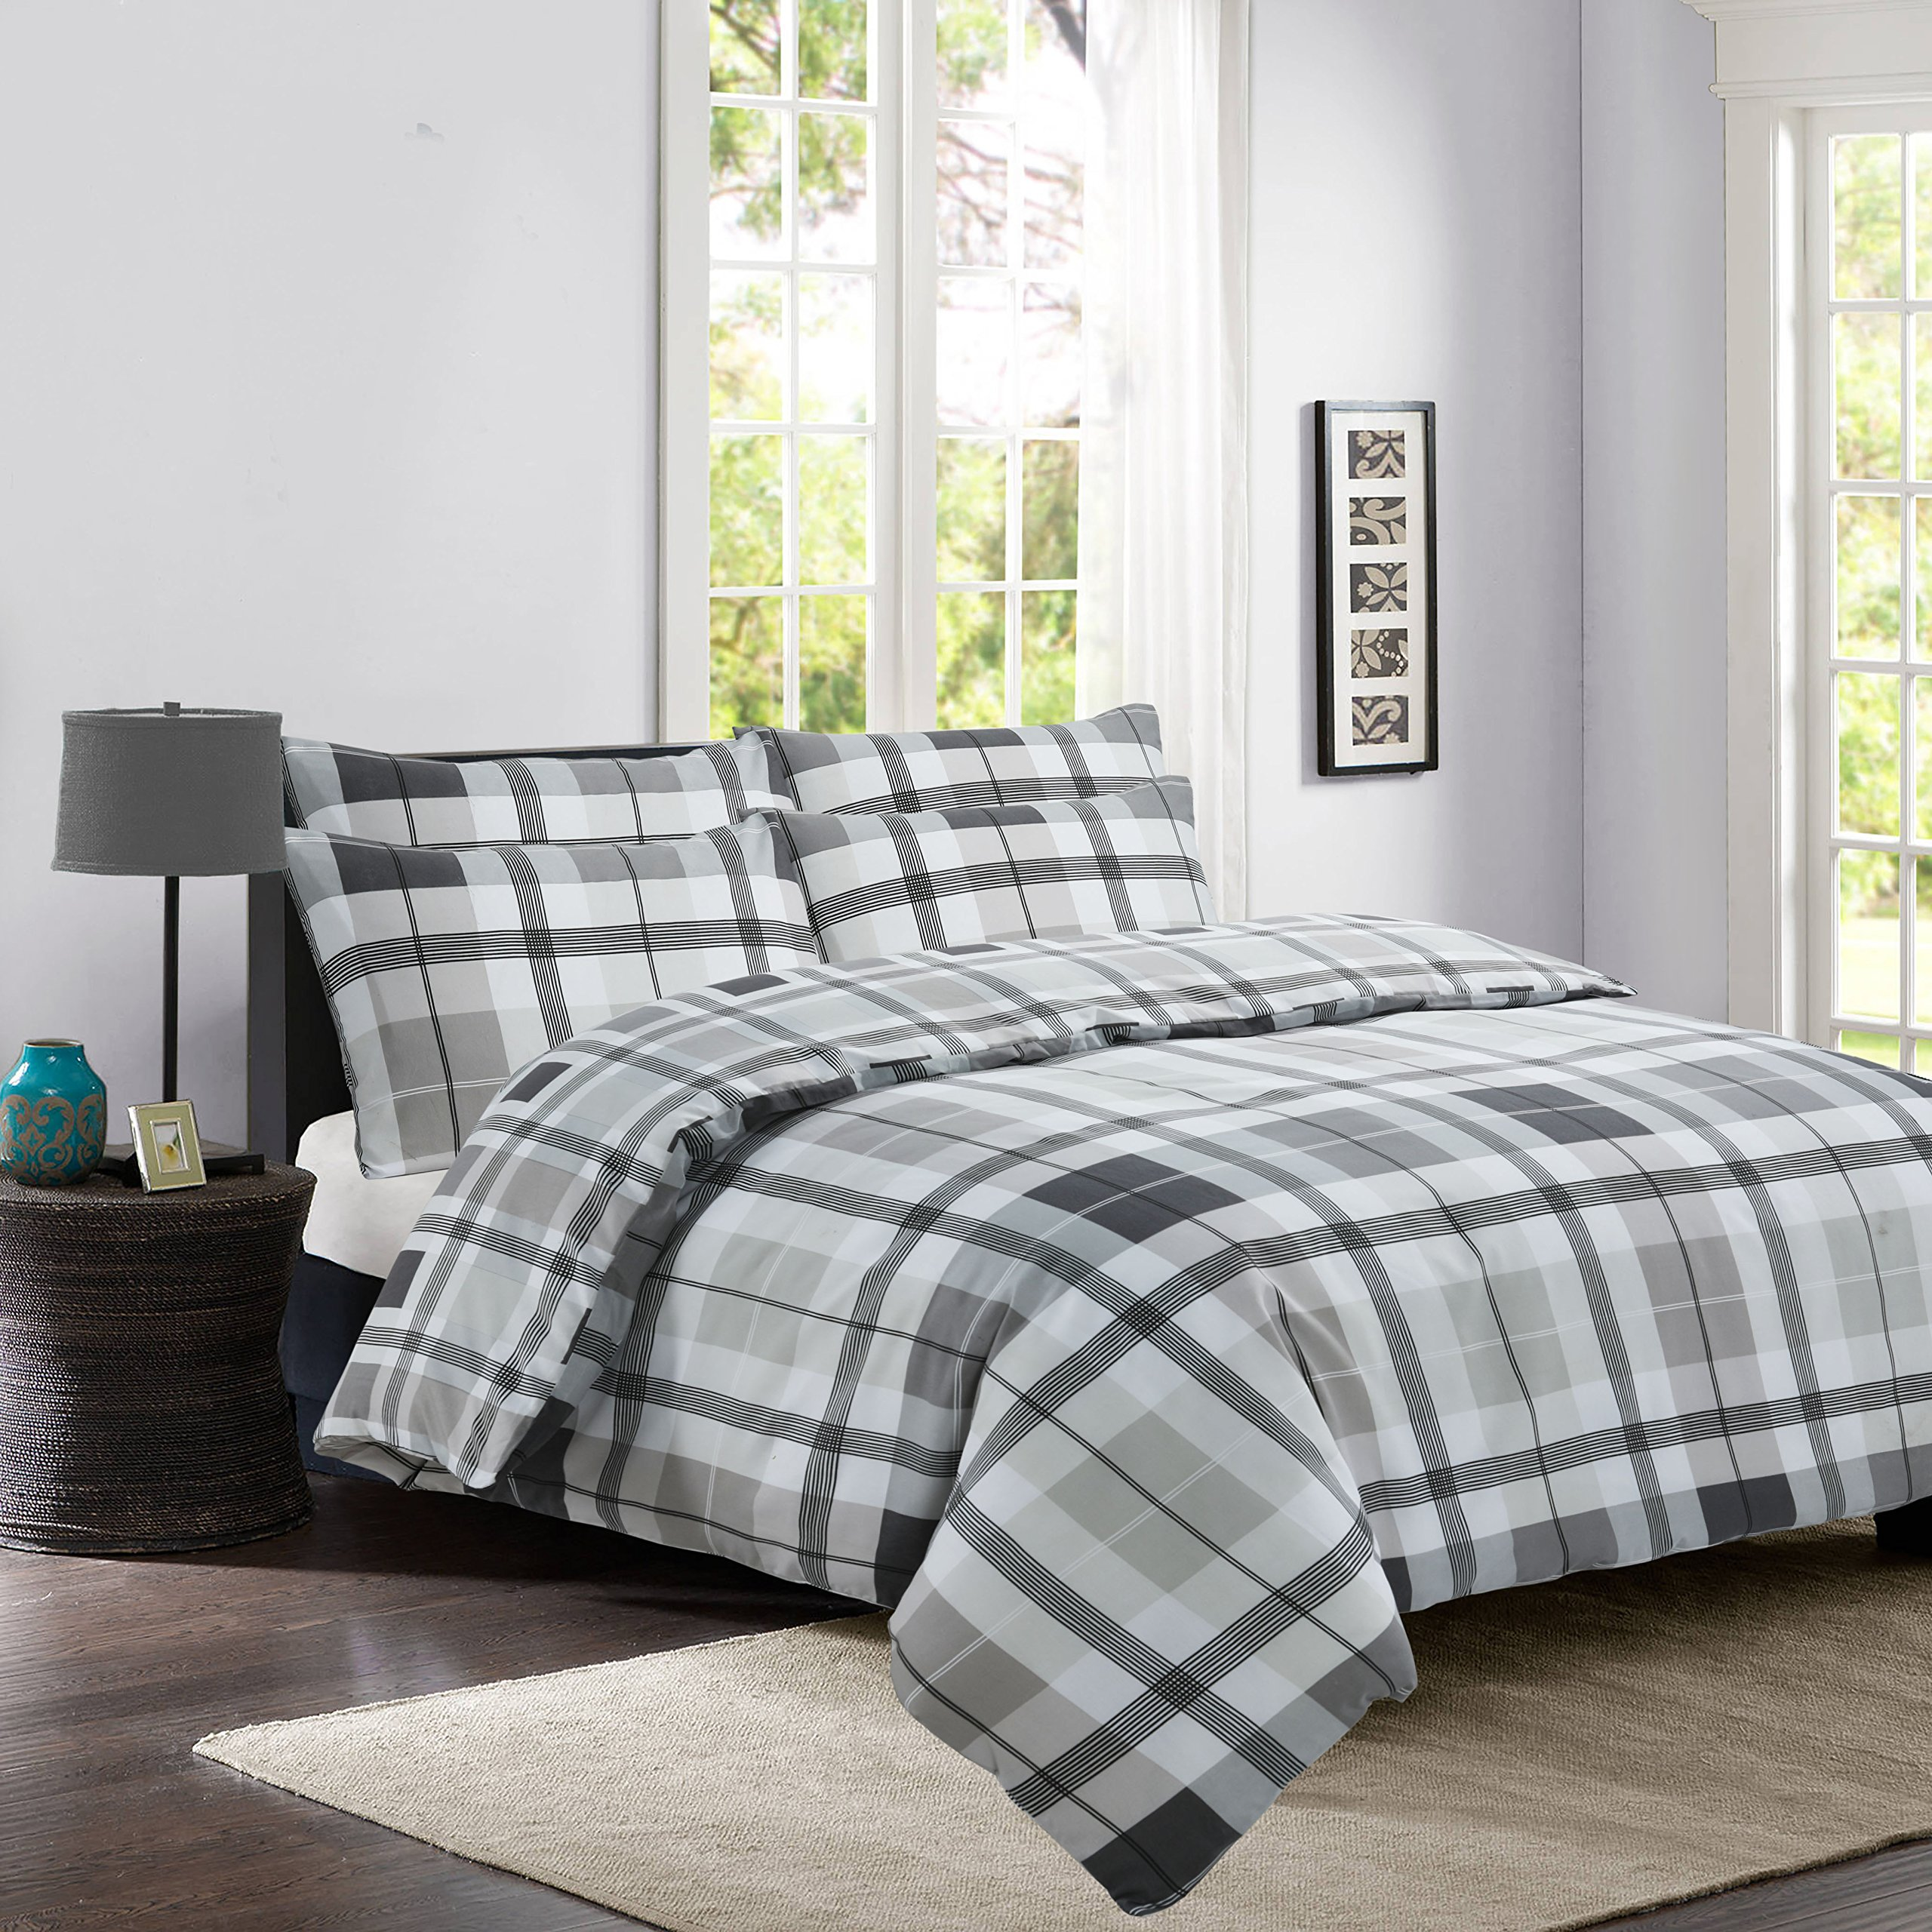 The Kingsford Everyday Luxury 7 piece Reversible Duvet Cover set with 2 Pillow Cases, 2 pillow shams & 2 Zippered pillow protectors, Egyptian Cotton Rich Percale Check Charcoal King